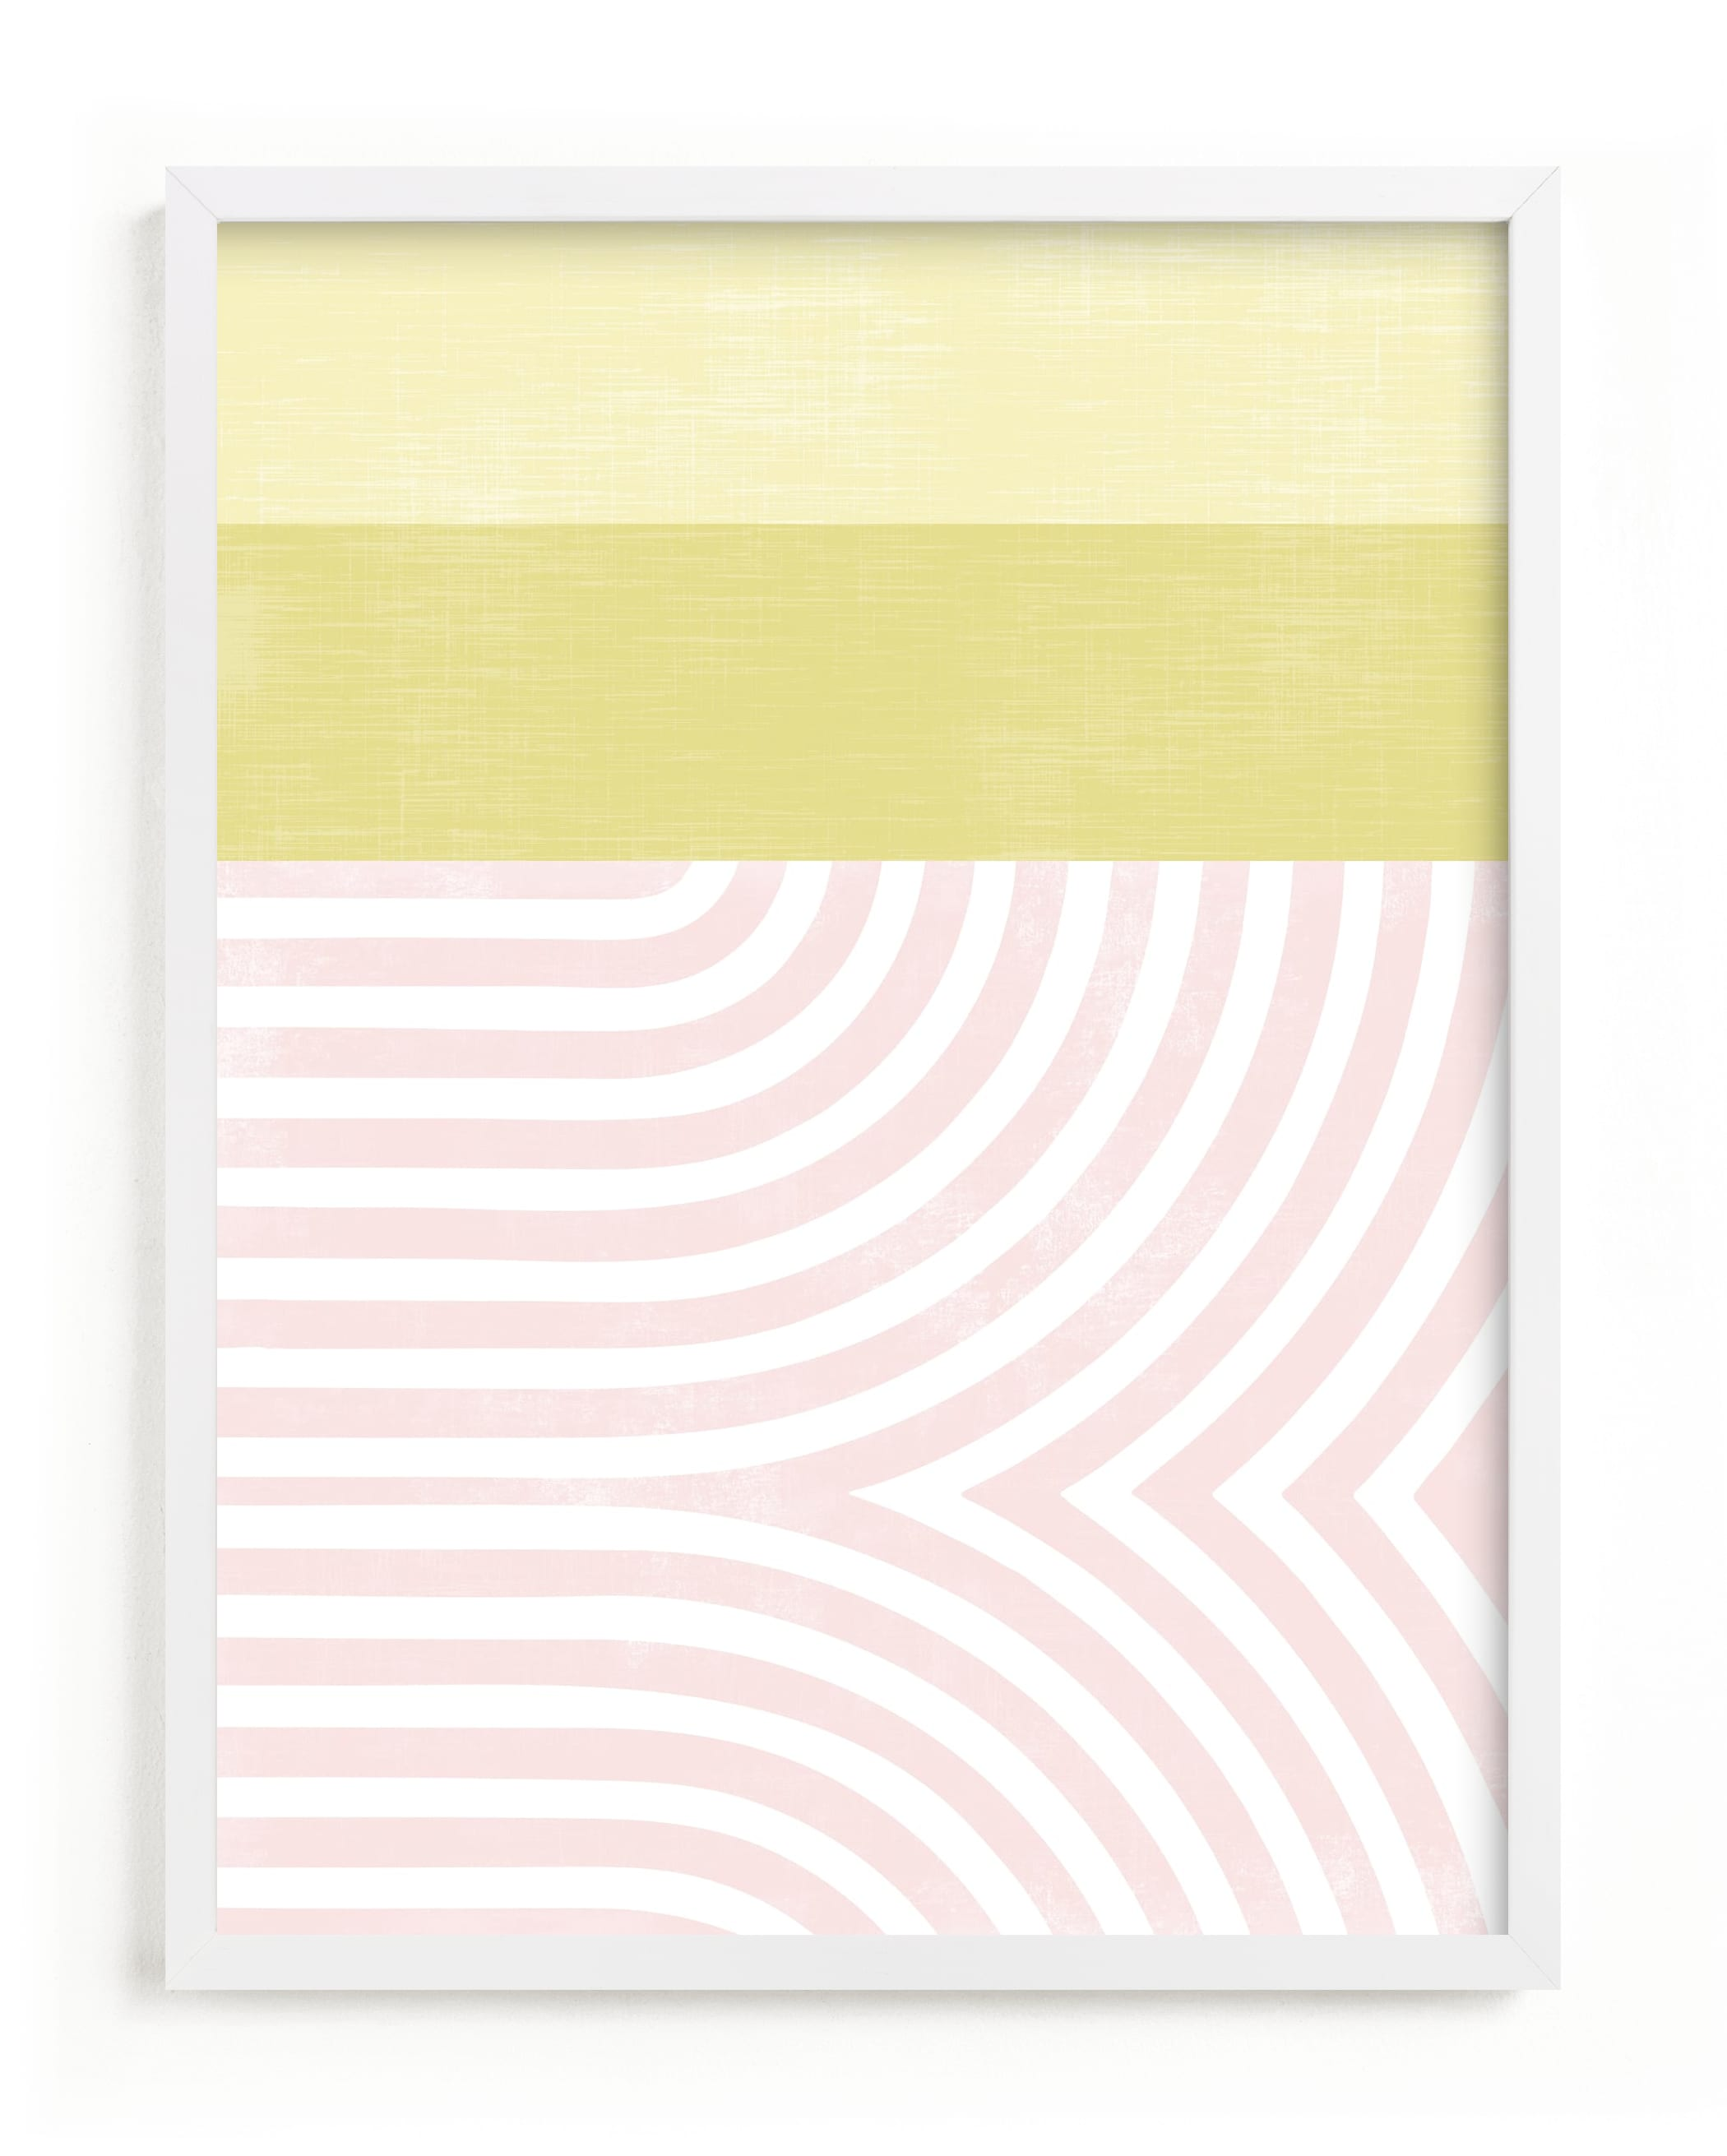 This is a pink kids wall art by Tanya Lee Design called Curve Appeal VI.